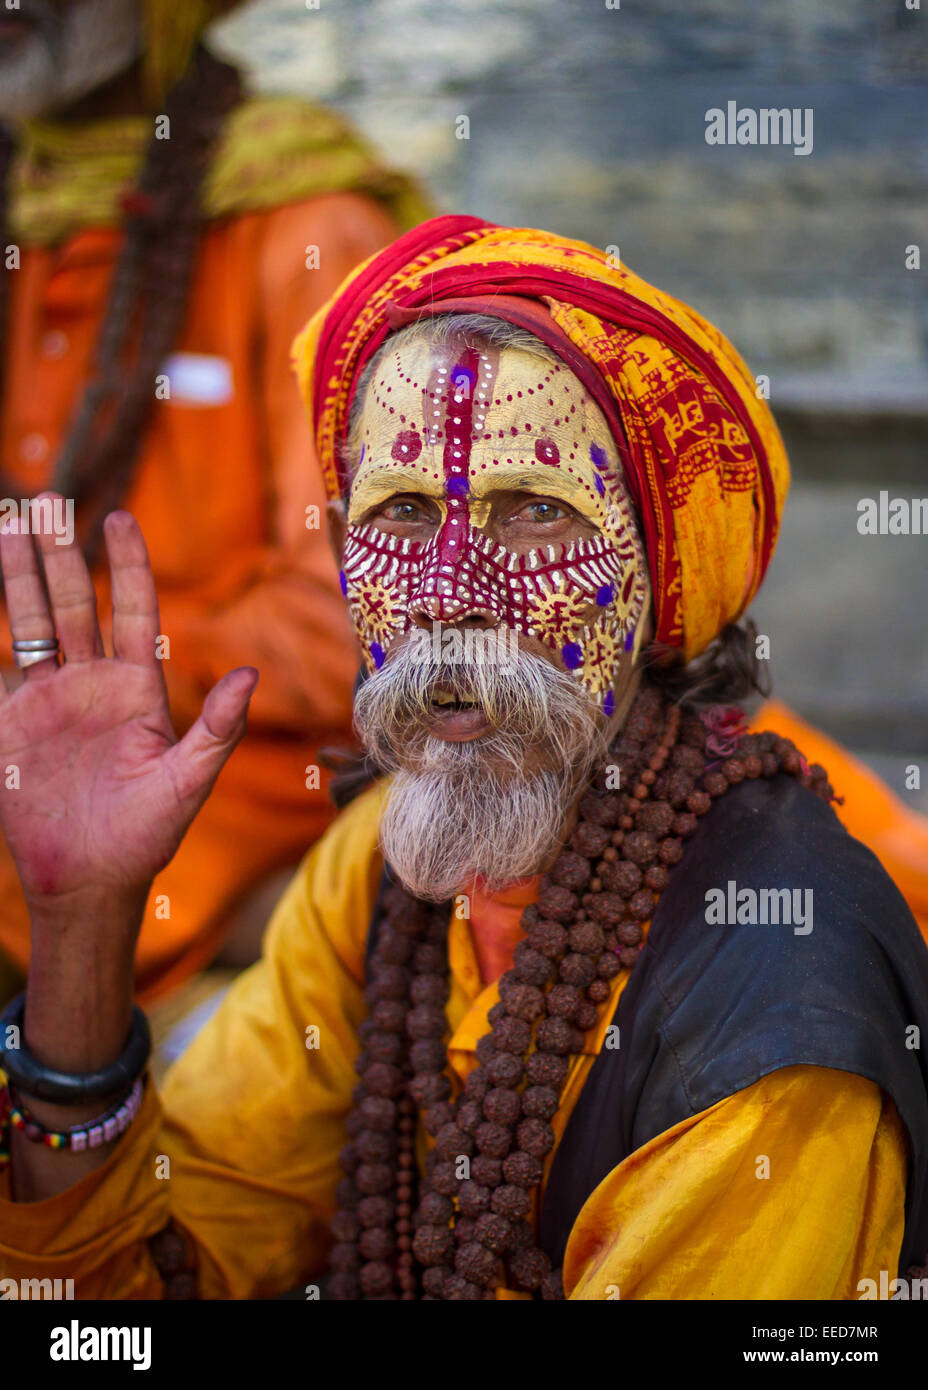 A sadhu is a Hindu holy man, or religious ascetic. Seen here in the temple district of Pashupatinath, in Kathmandu, Stock Photo